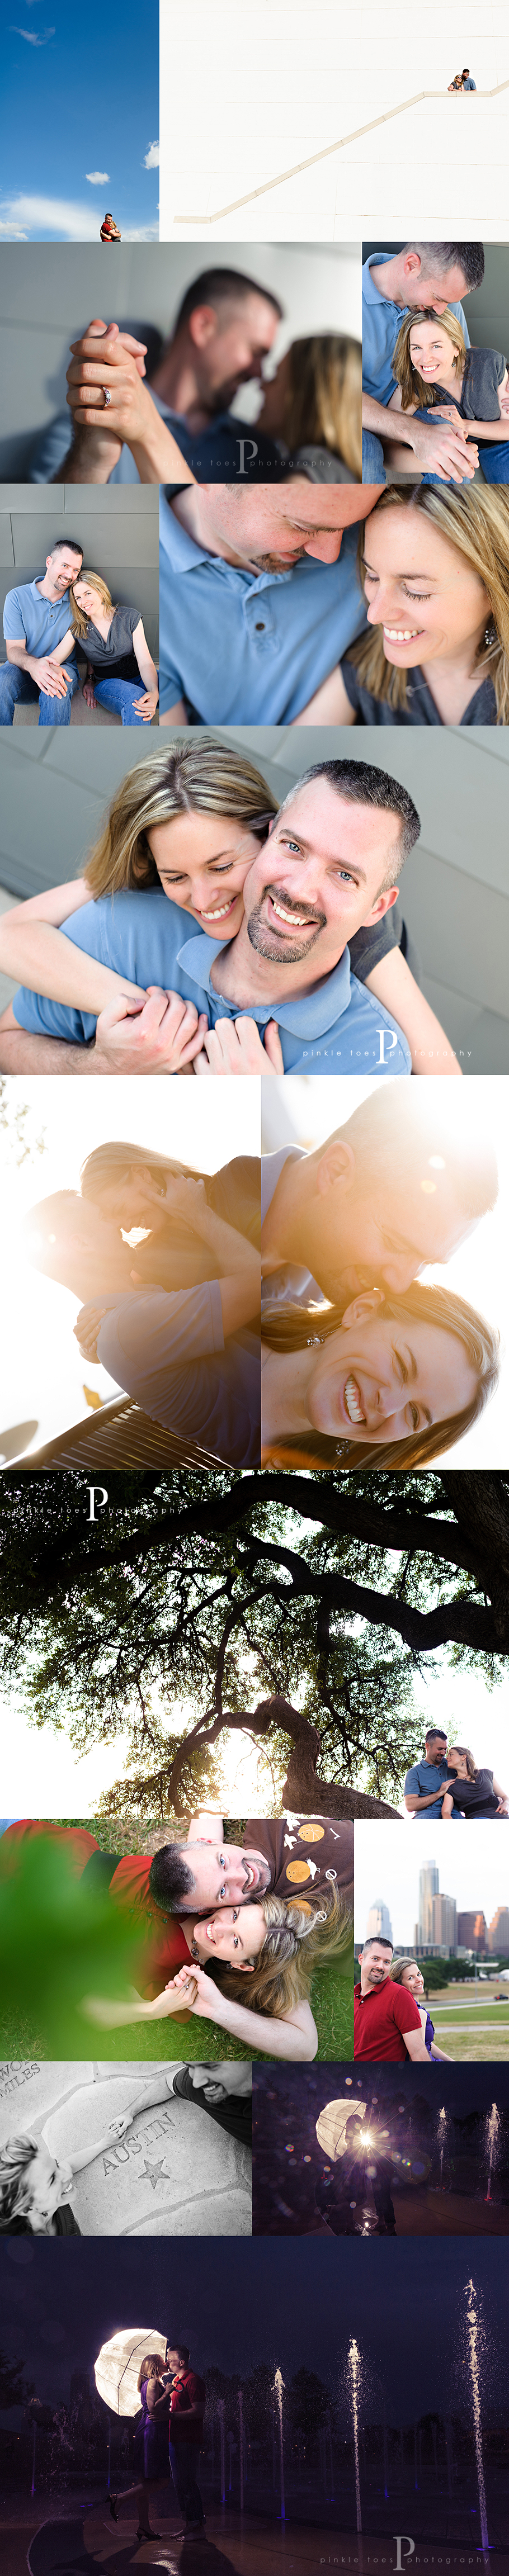 nn-austin-candid-lifestyle-engagement-photographer.jpg